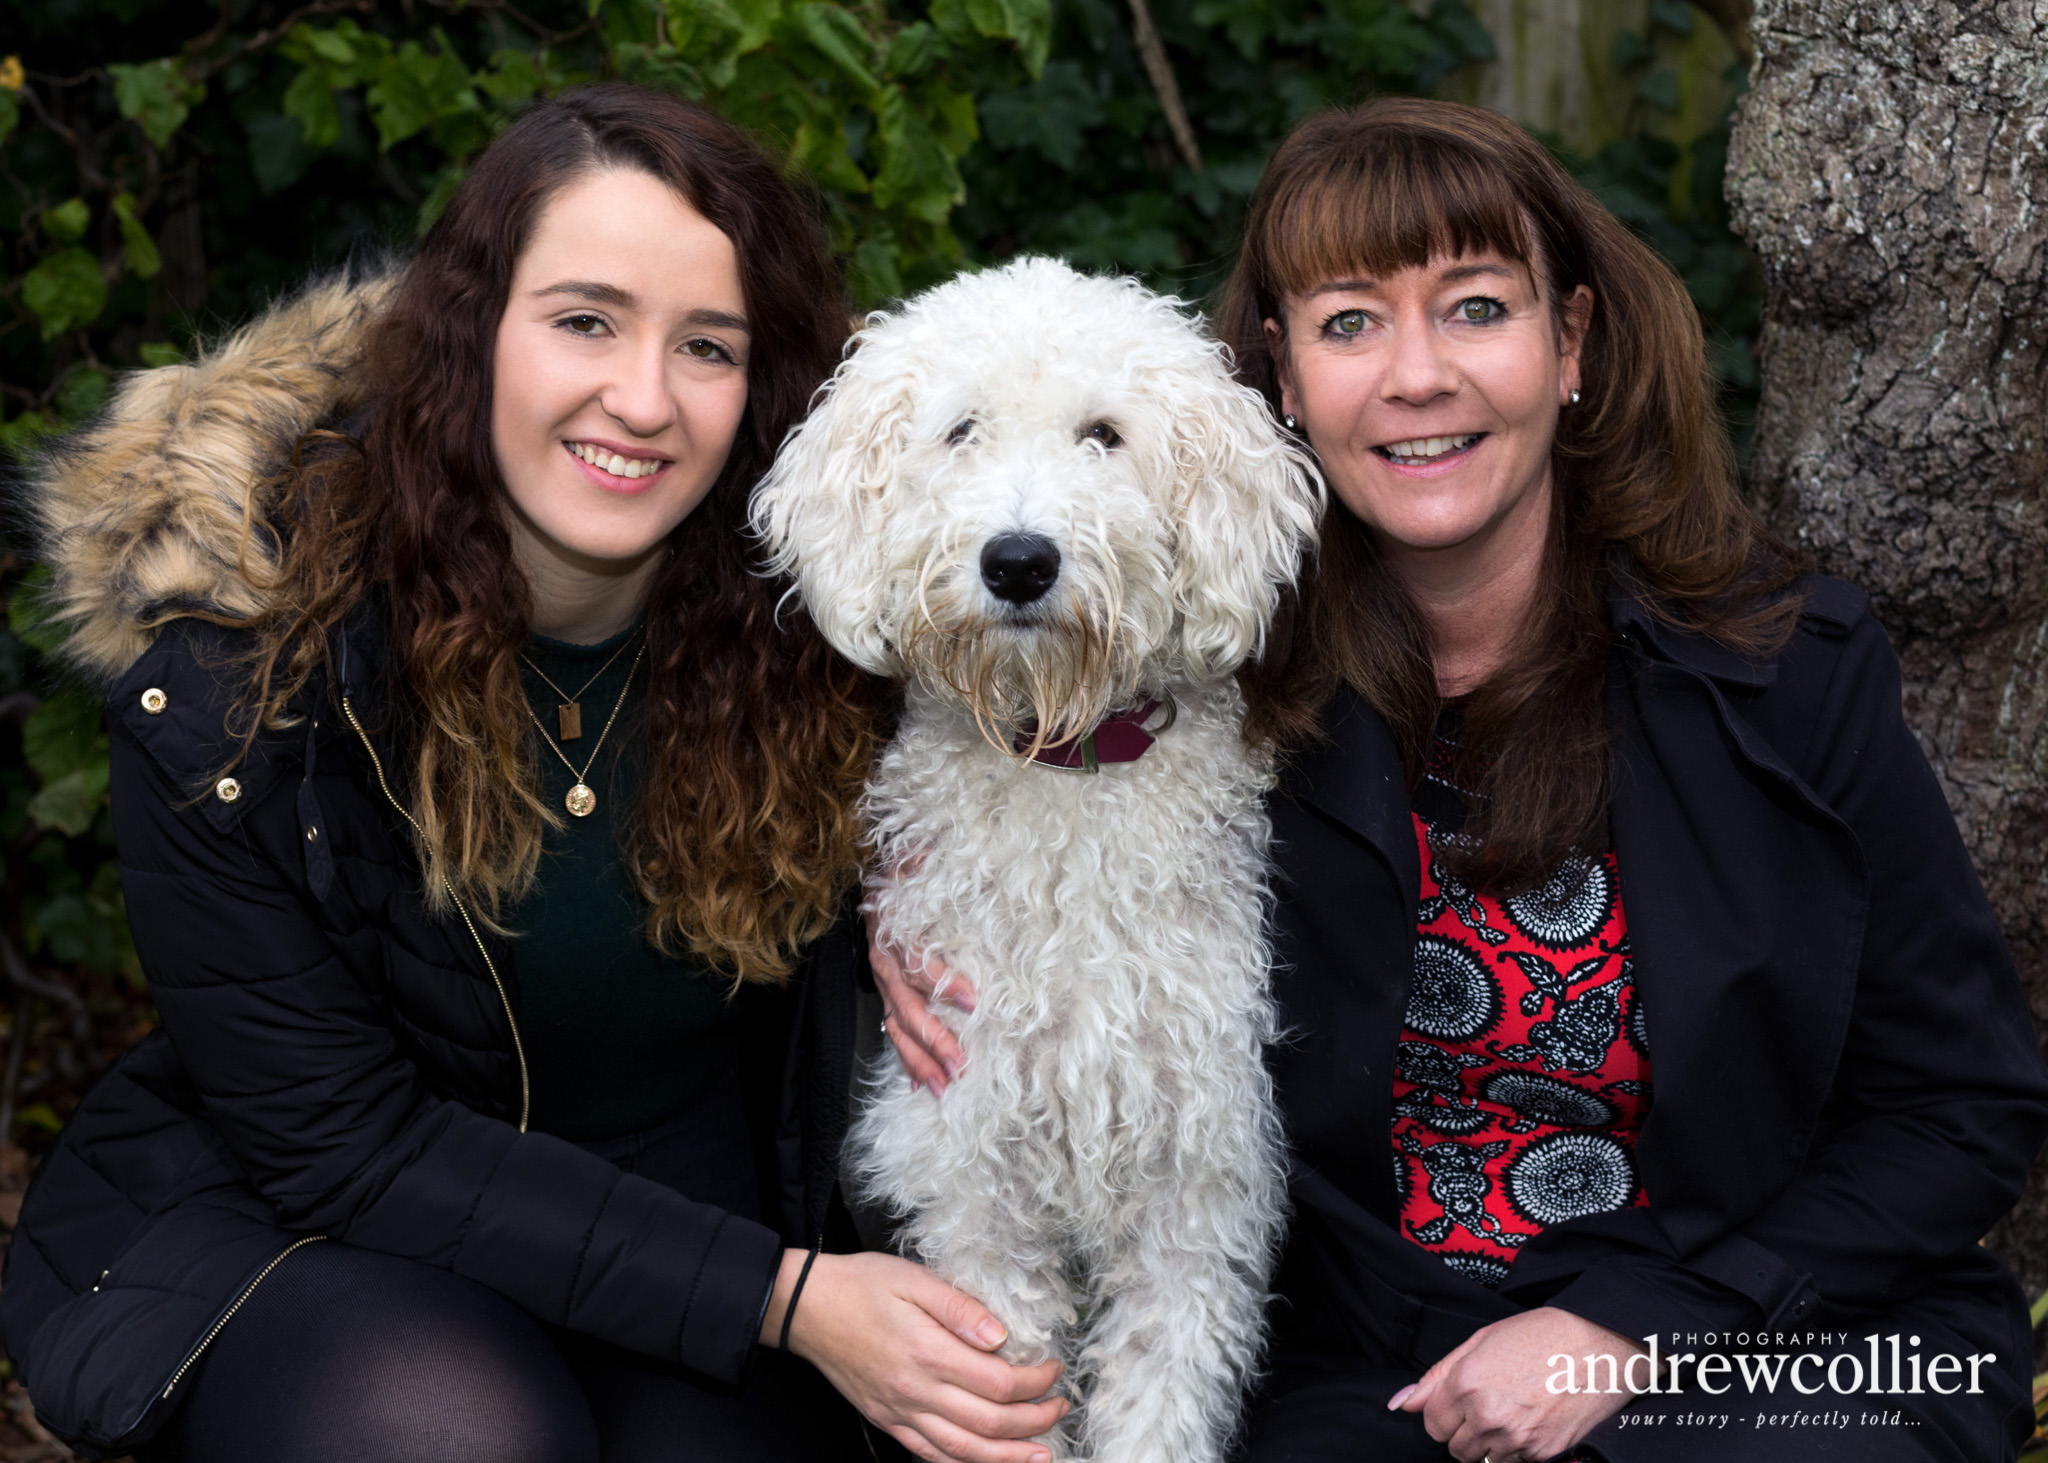 a colour portrait photograph of a mother daughter and a white labradoodle dog from a winter family portrait session in Didsbury, South Manchester